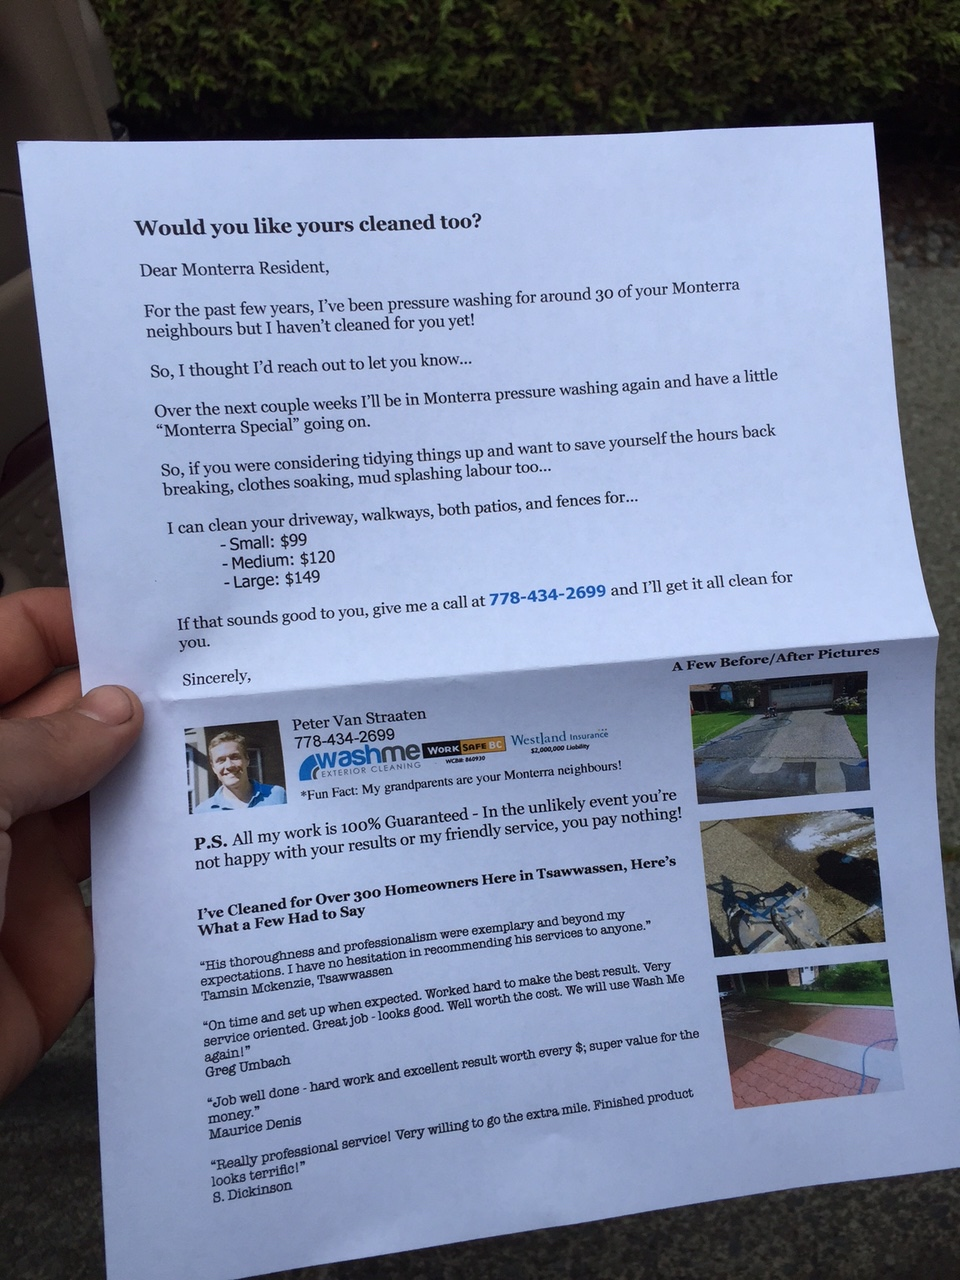 powerwashing flyers took business from title powerwashing flyers